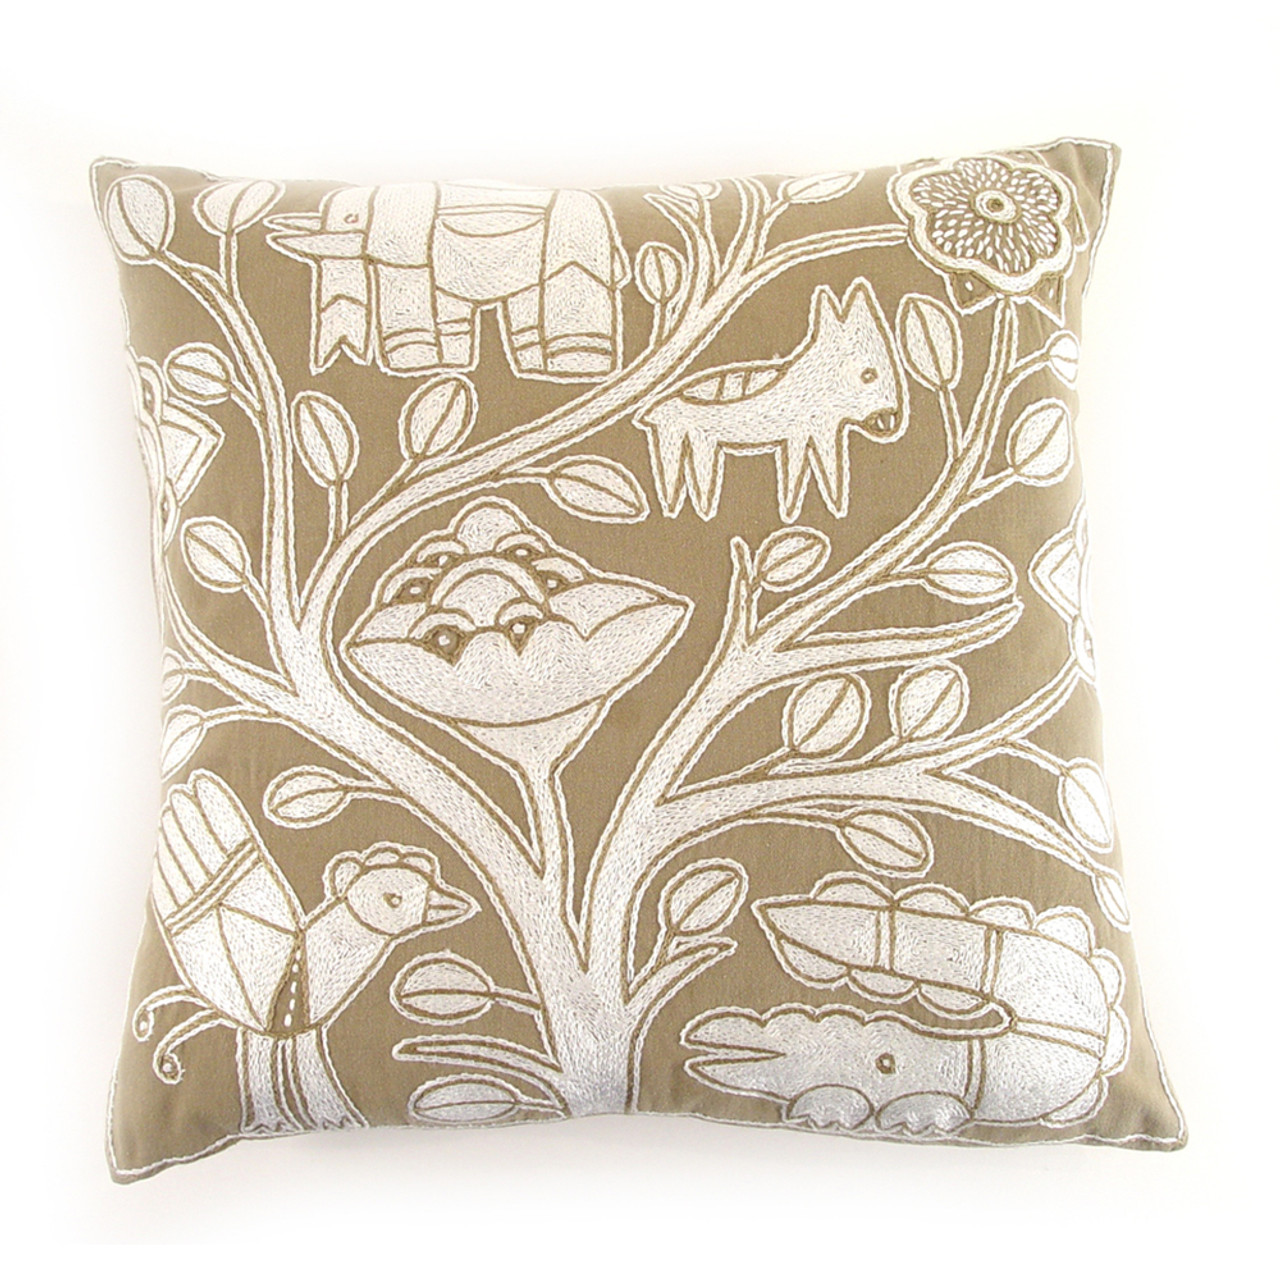 Beige And White Embroidered Pillow Mbare